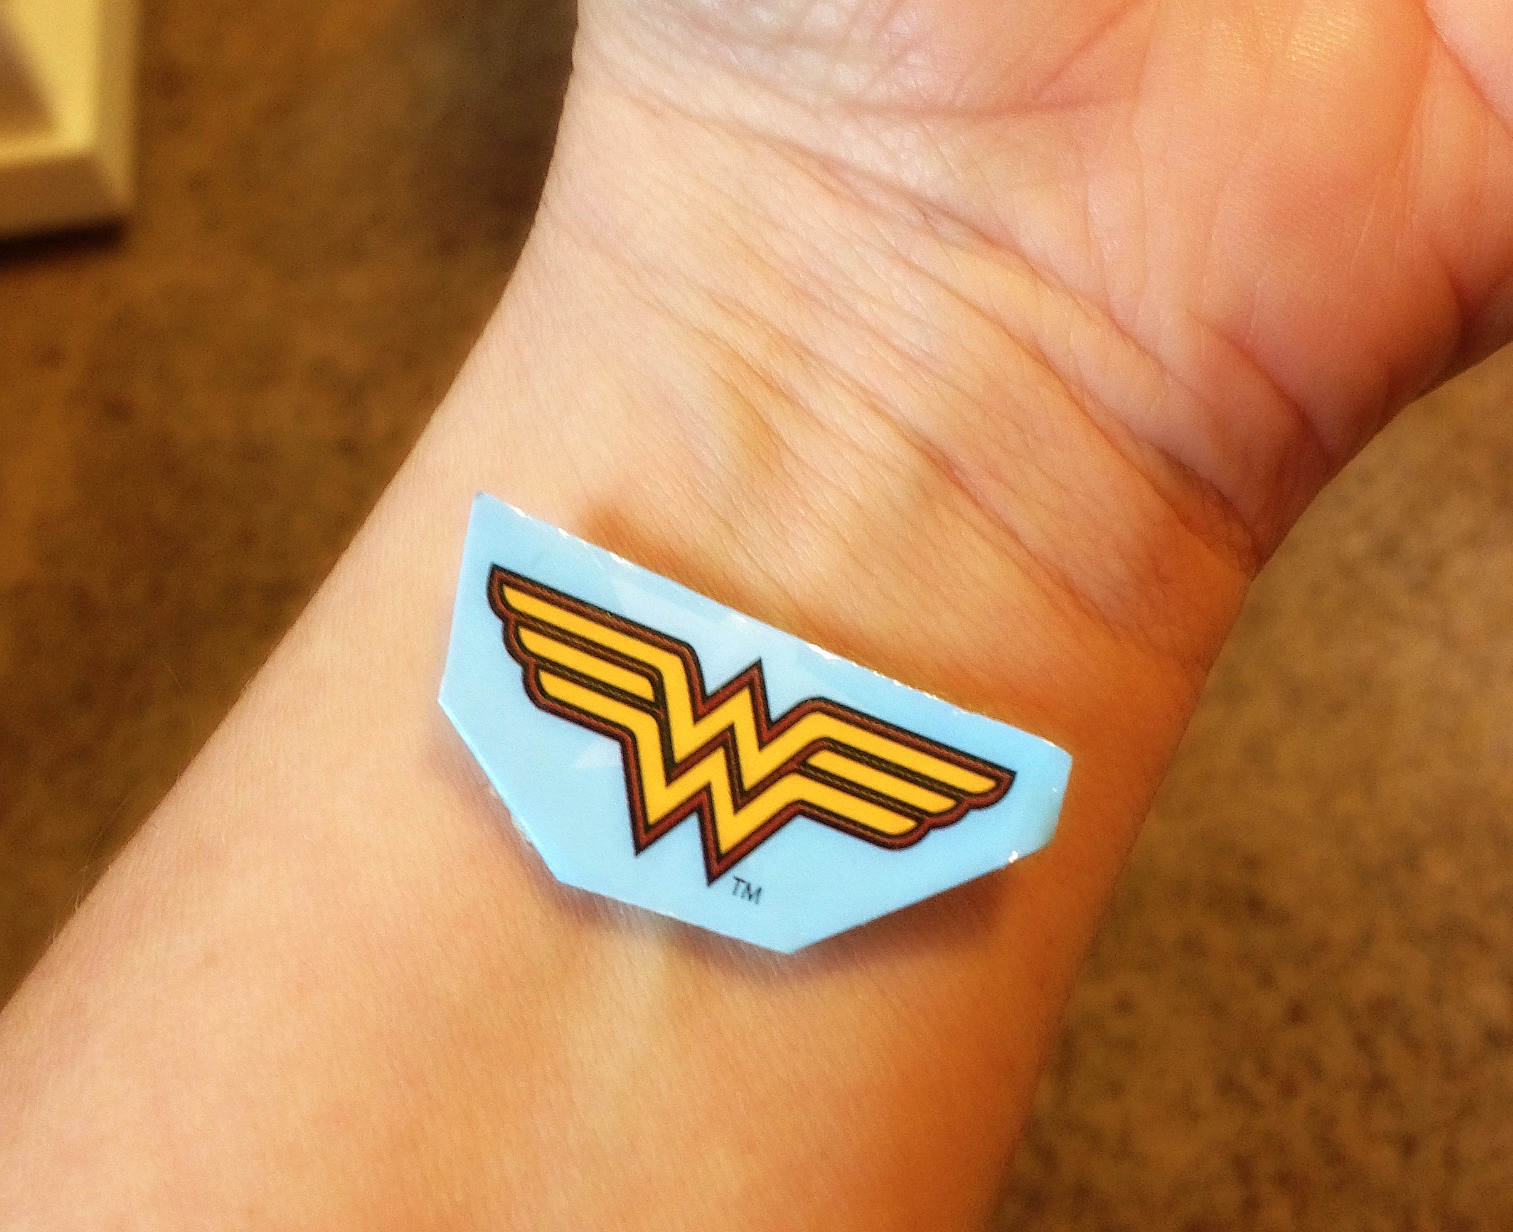 Wonder woman symbol tattoo